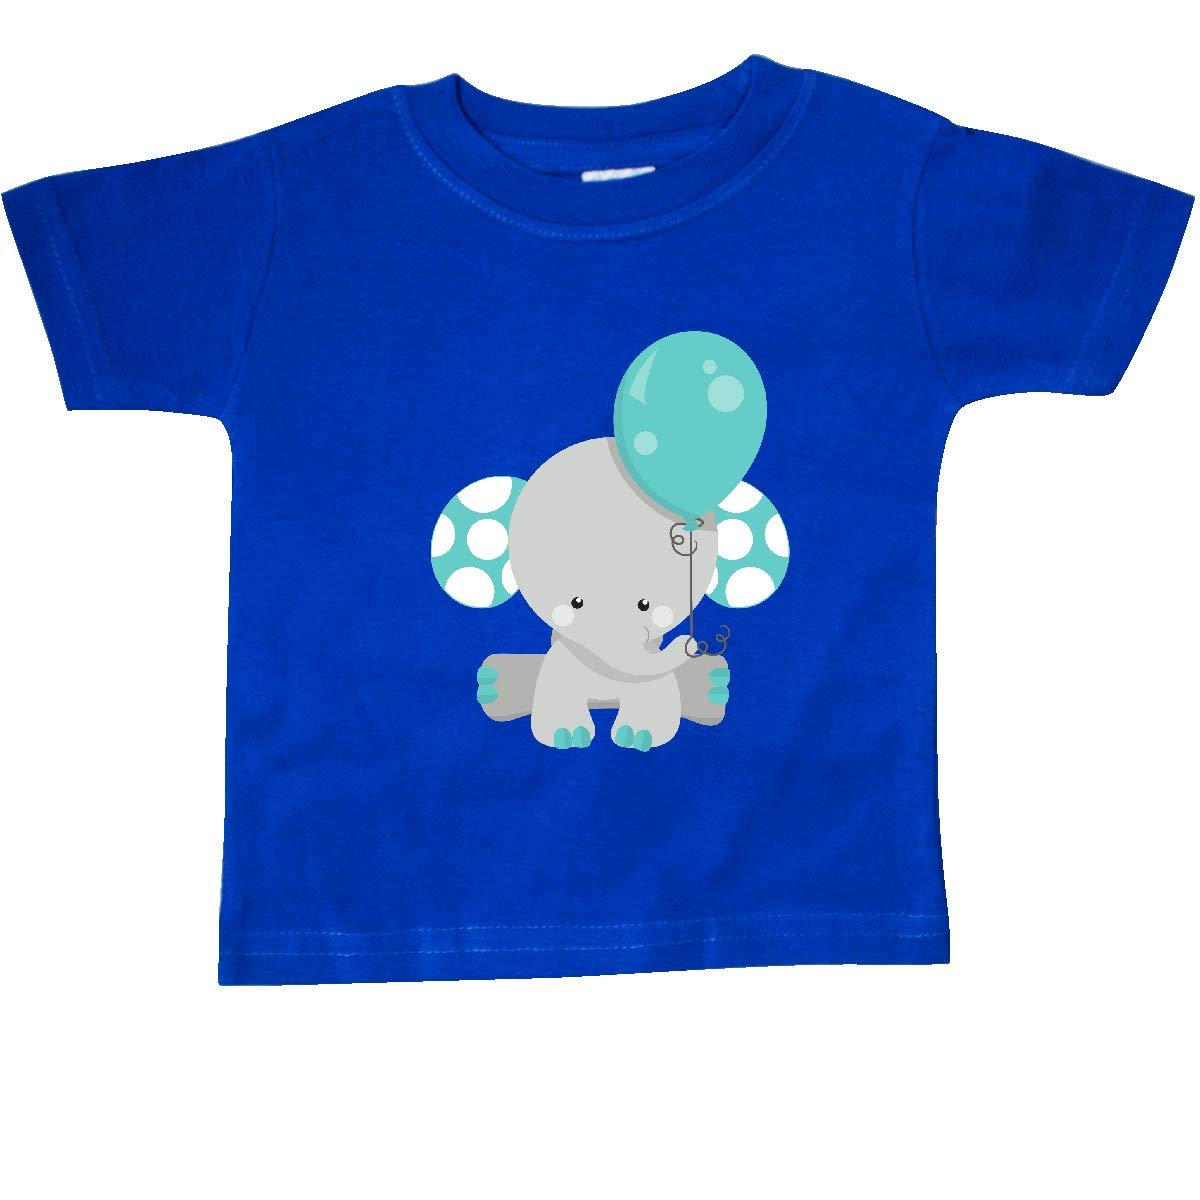 inktastic Little Gray Elephant Holding a Blue Balloon Baby T-Shirt